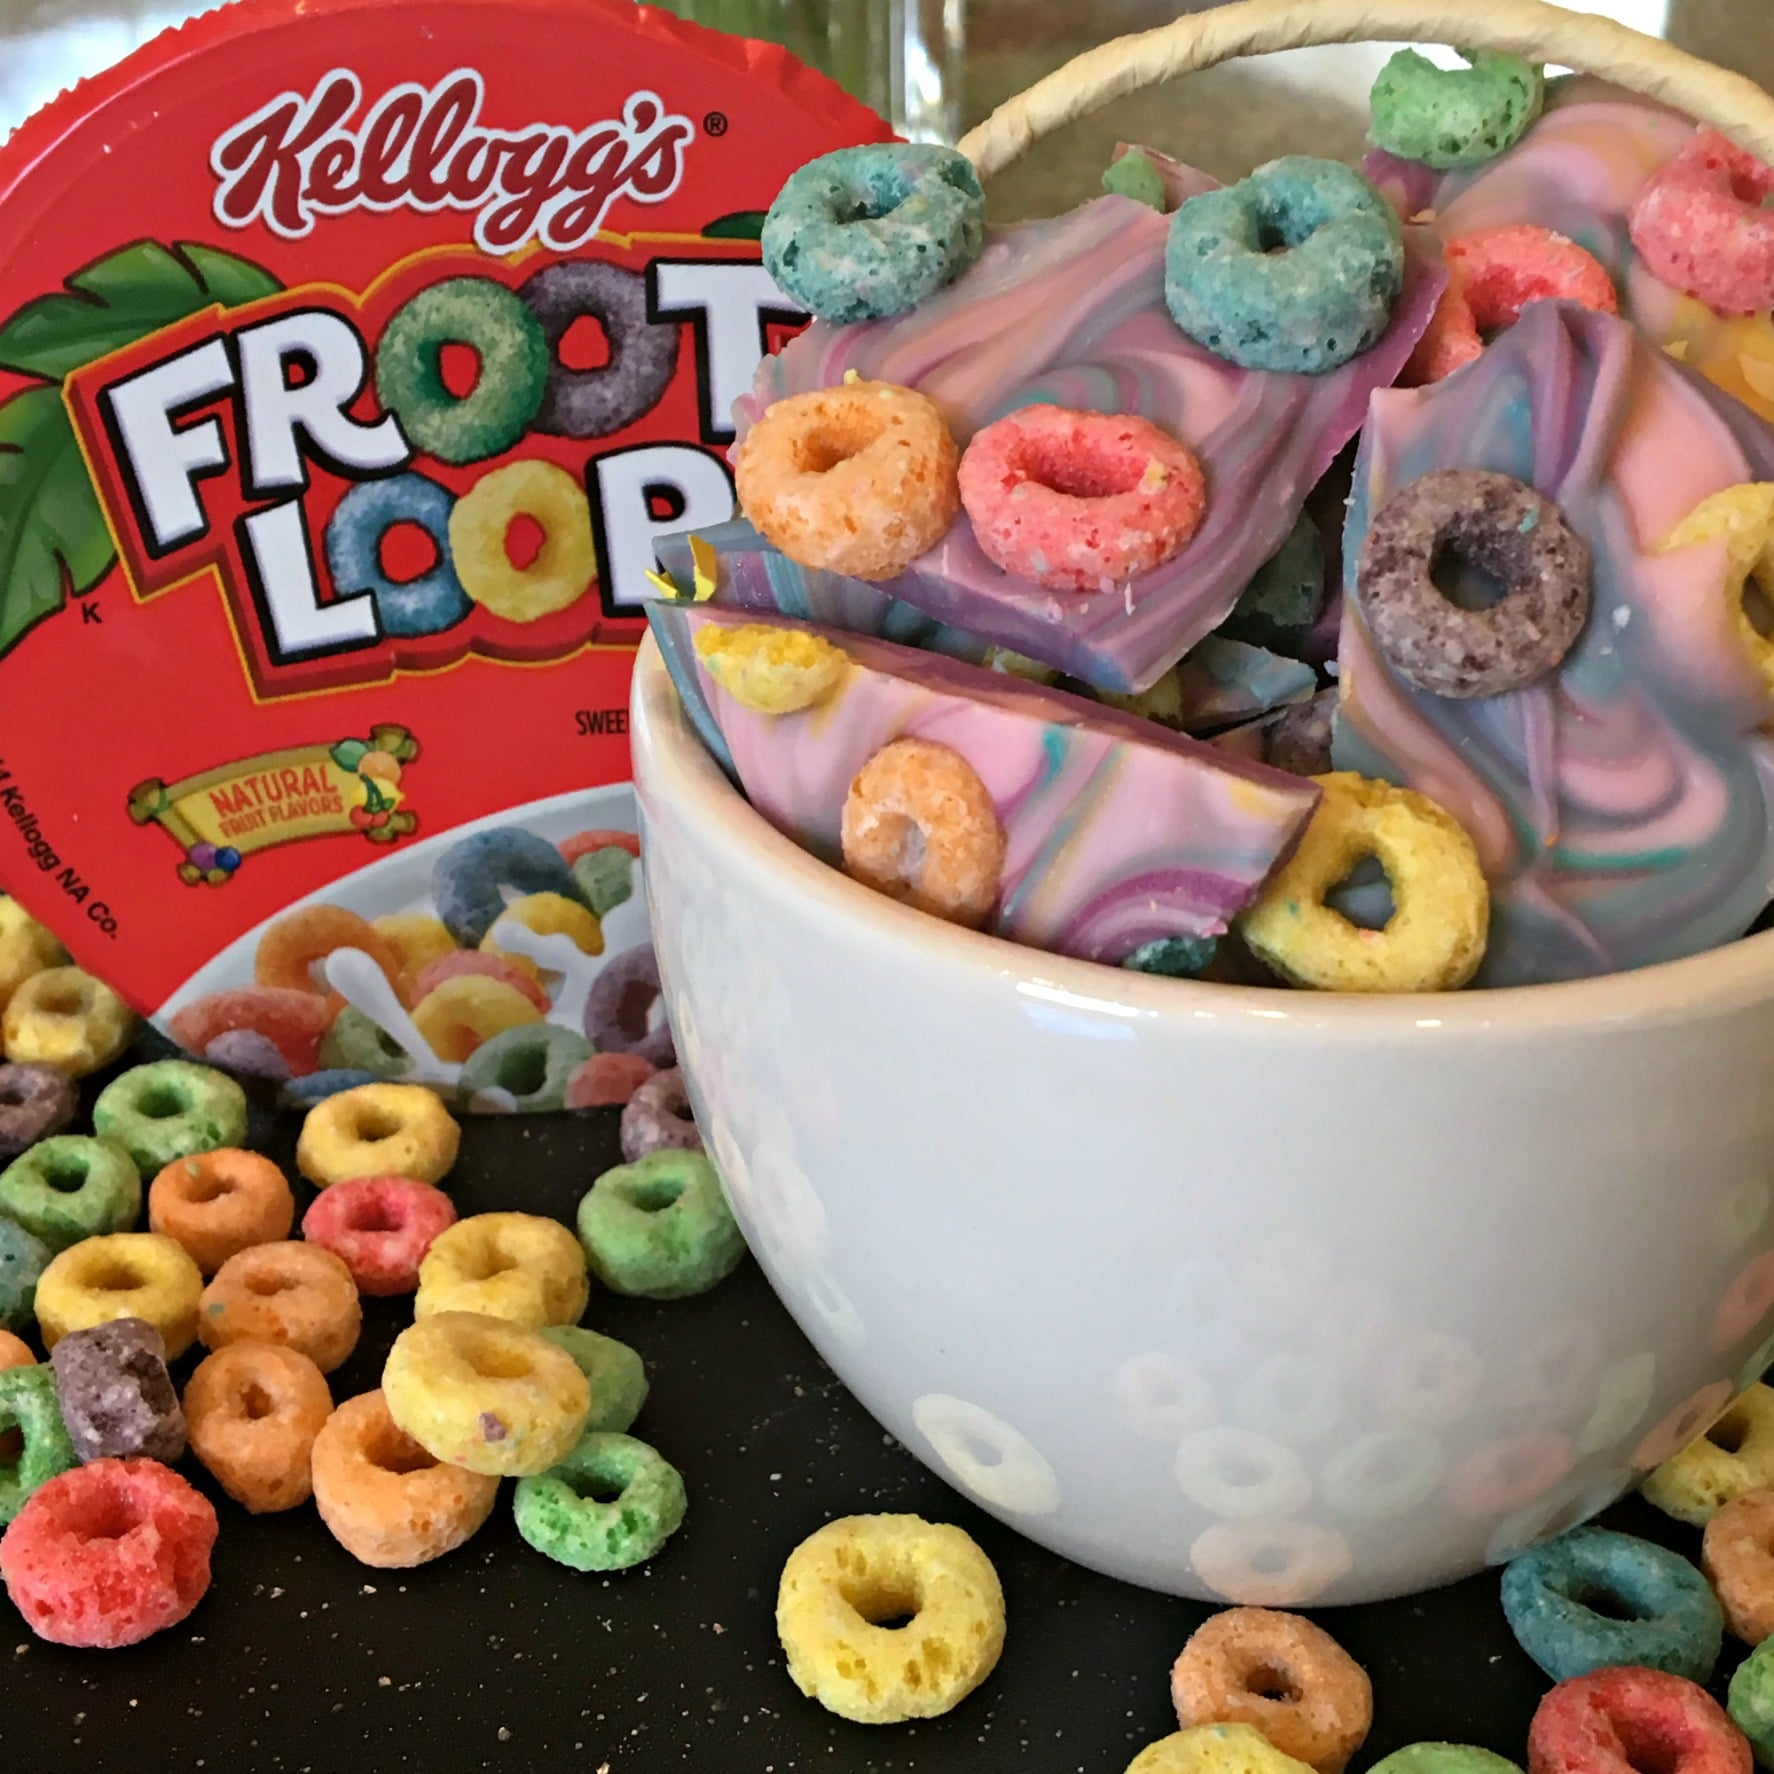 Froot Loops, Cereal Candy, Cereal and milk, Tye-Dye Cereal Dessert Bark